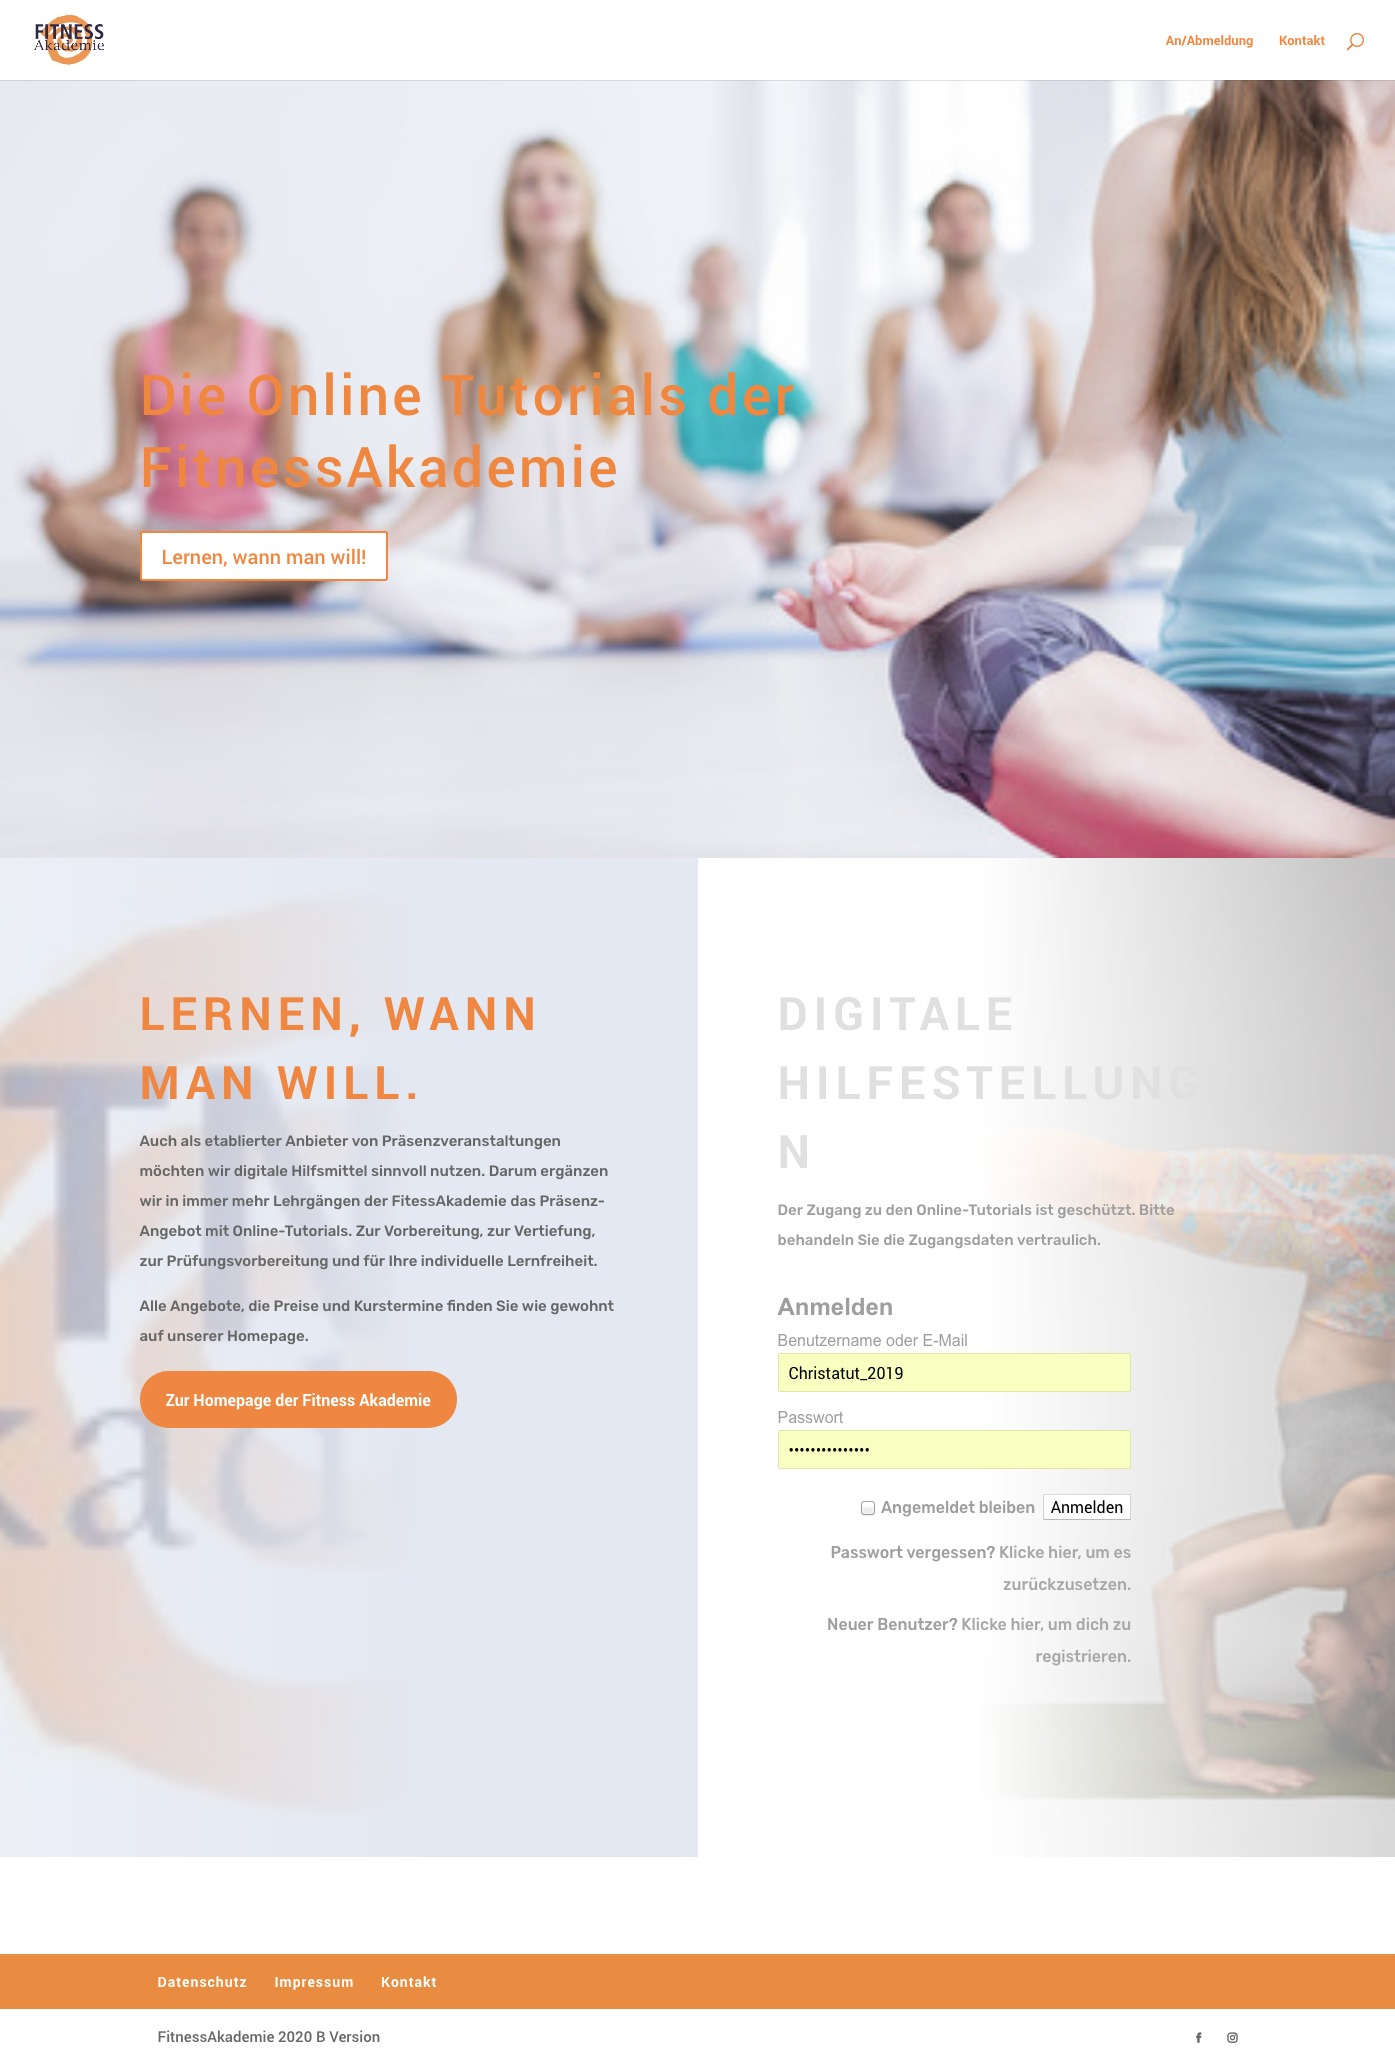 klartext.marketing für Fitness Akademie, Digitale Inhalte, 2020